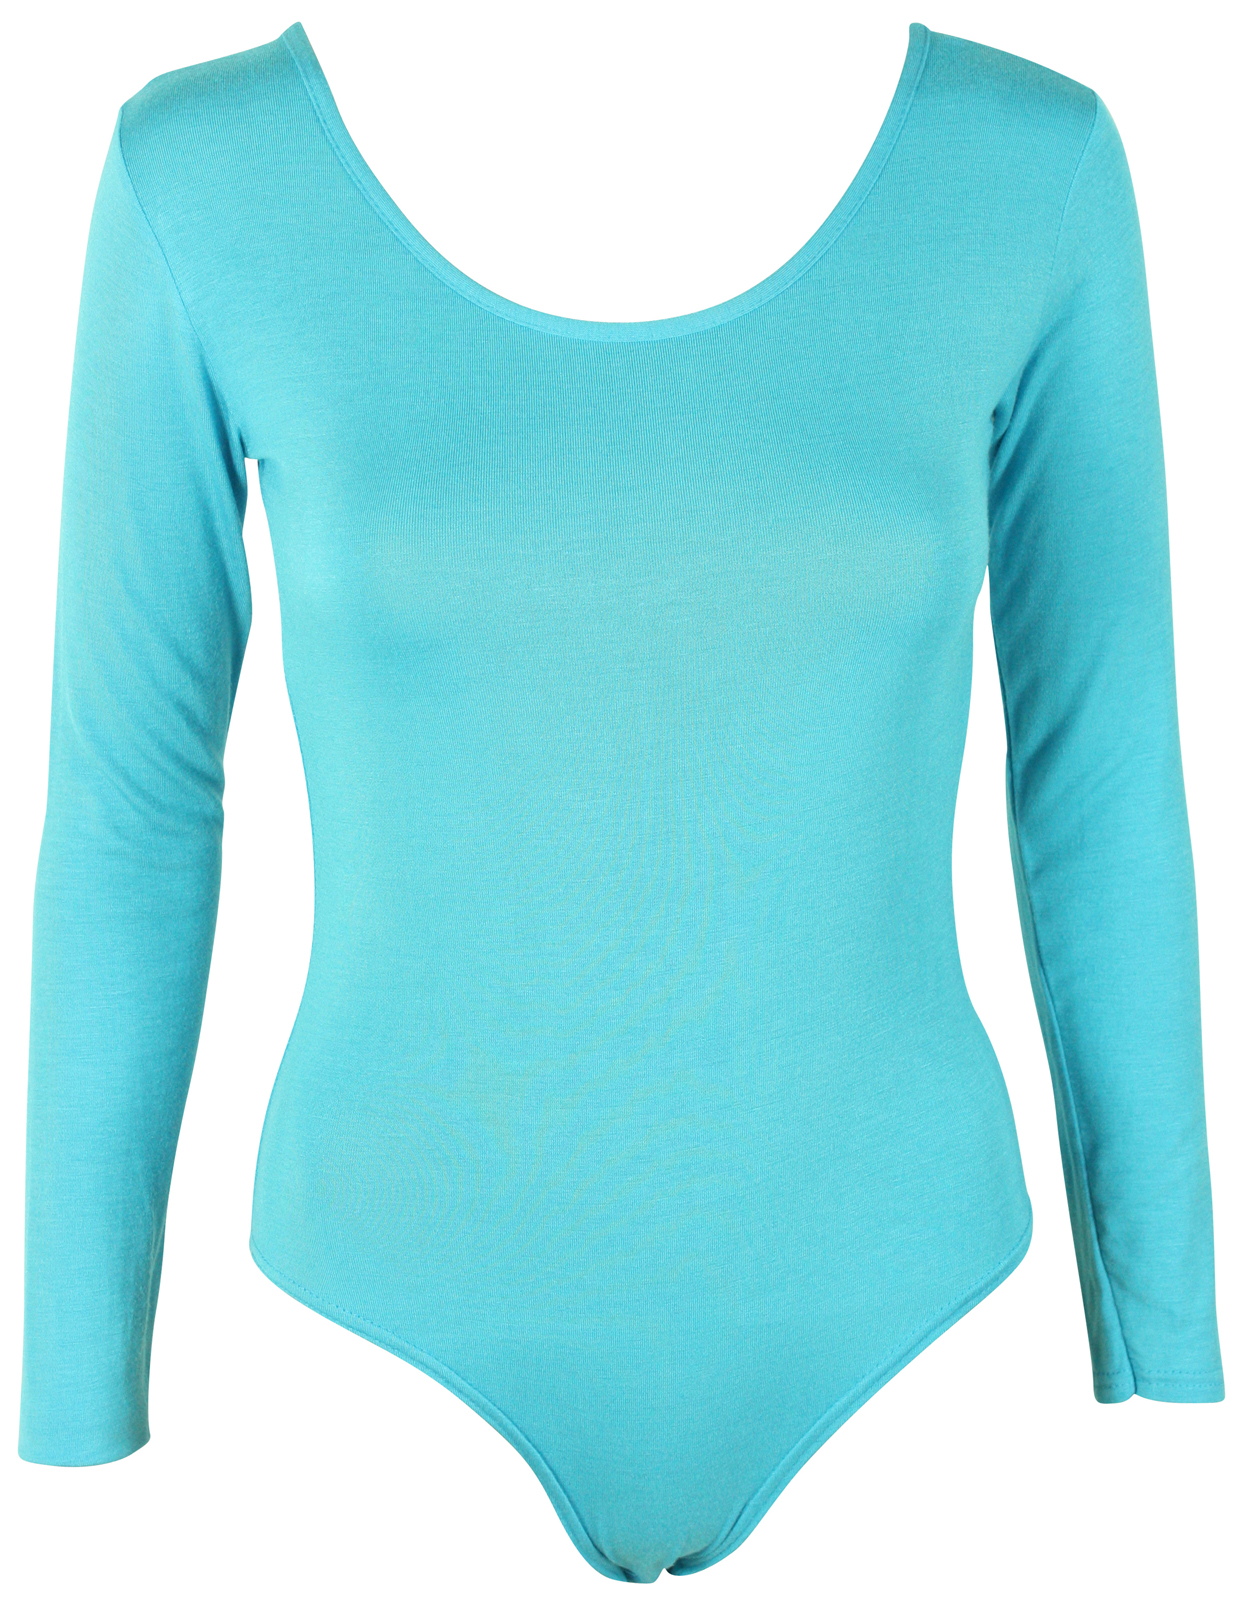 a68481ff9b23 LADIES LONG SLEEVE STRETCH LEOTARD BODYSUIT WOMENS TOP